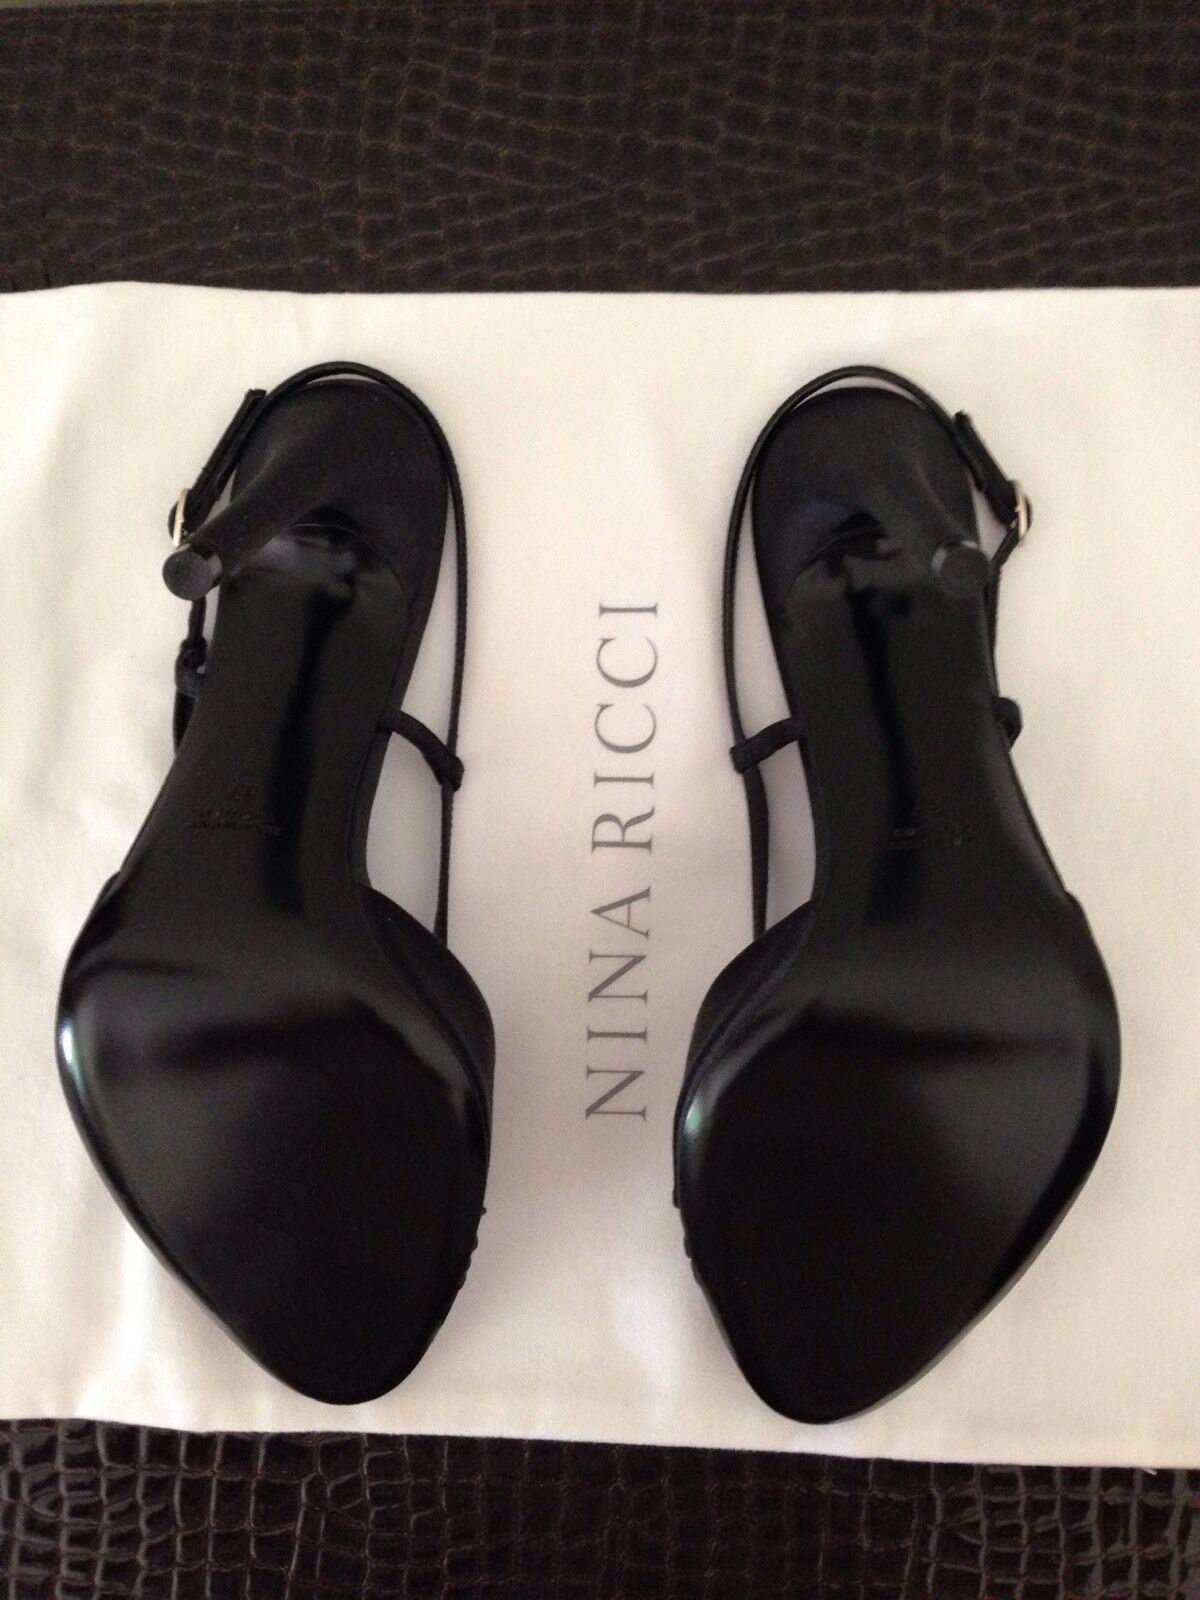 NINA RICCI black satin 5 5 5 stilettos size 37 bow tie adjustable slingback strap 9f954a